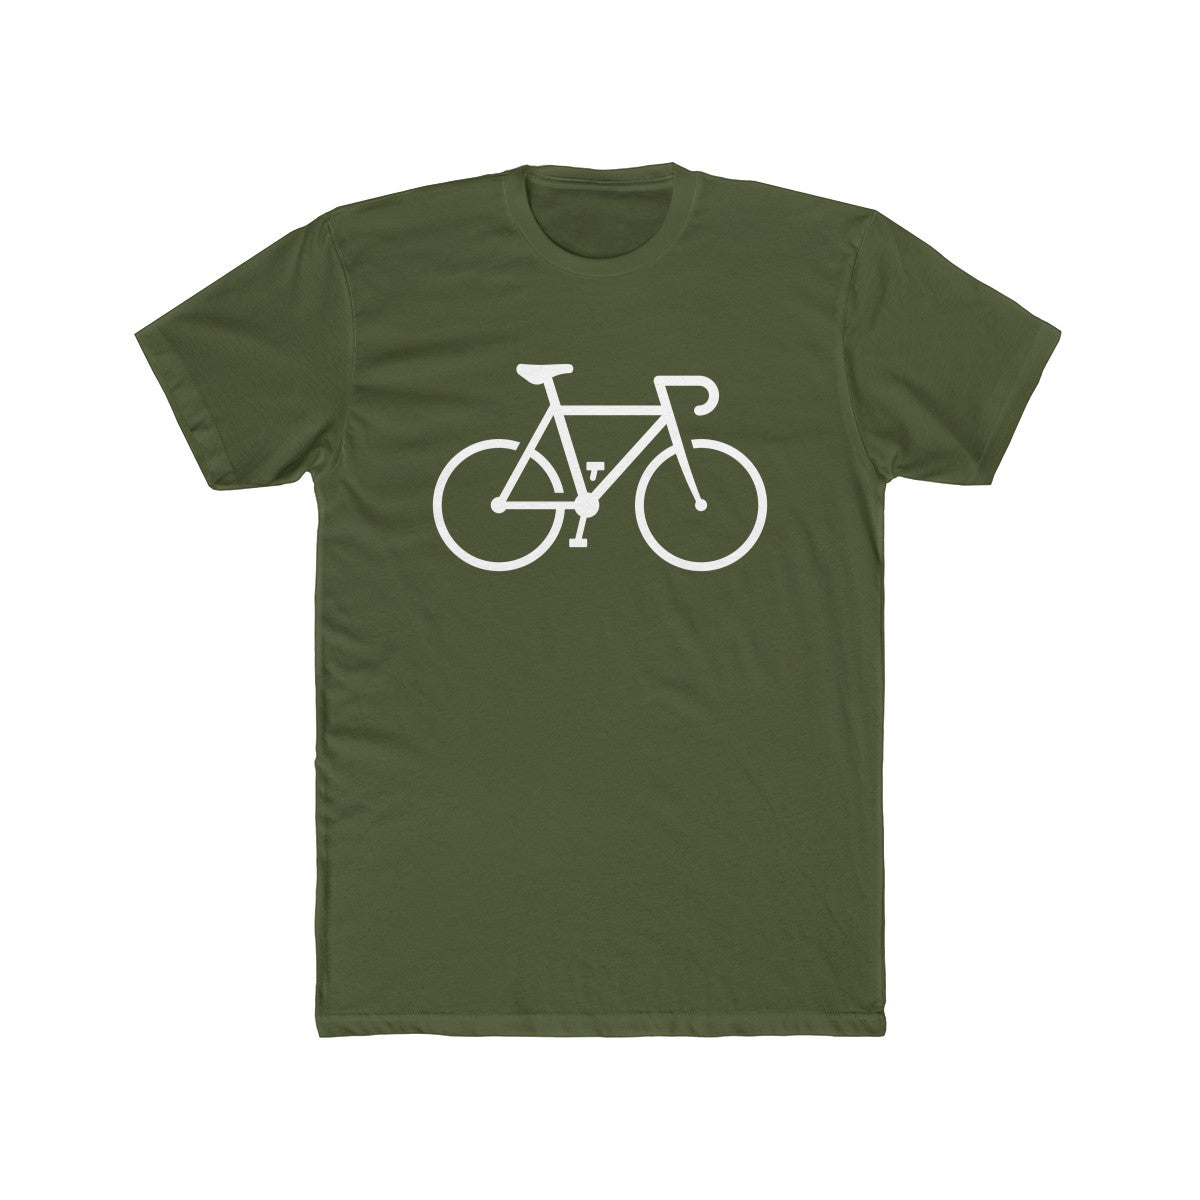 Uphill Industries Simple Cycle Tee - Cycling T Shirt